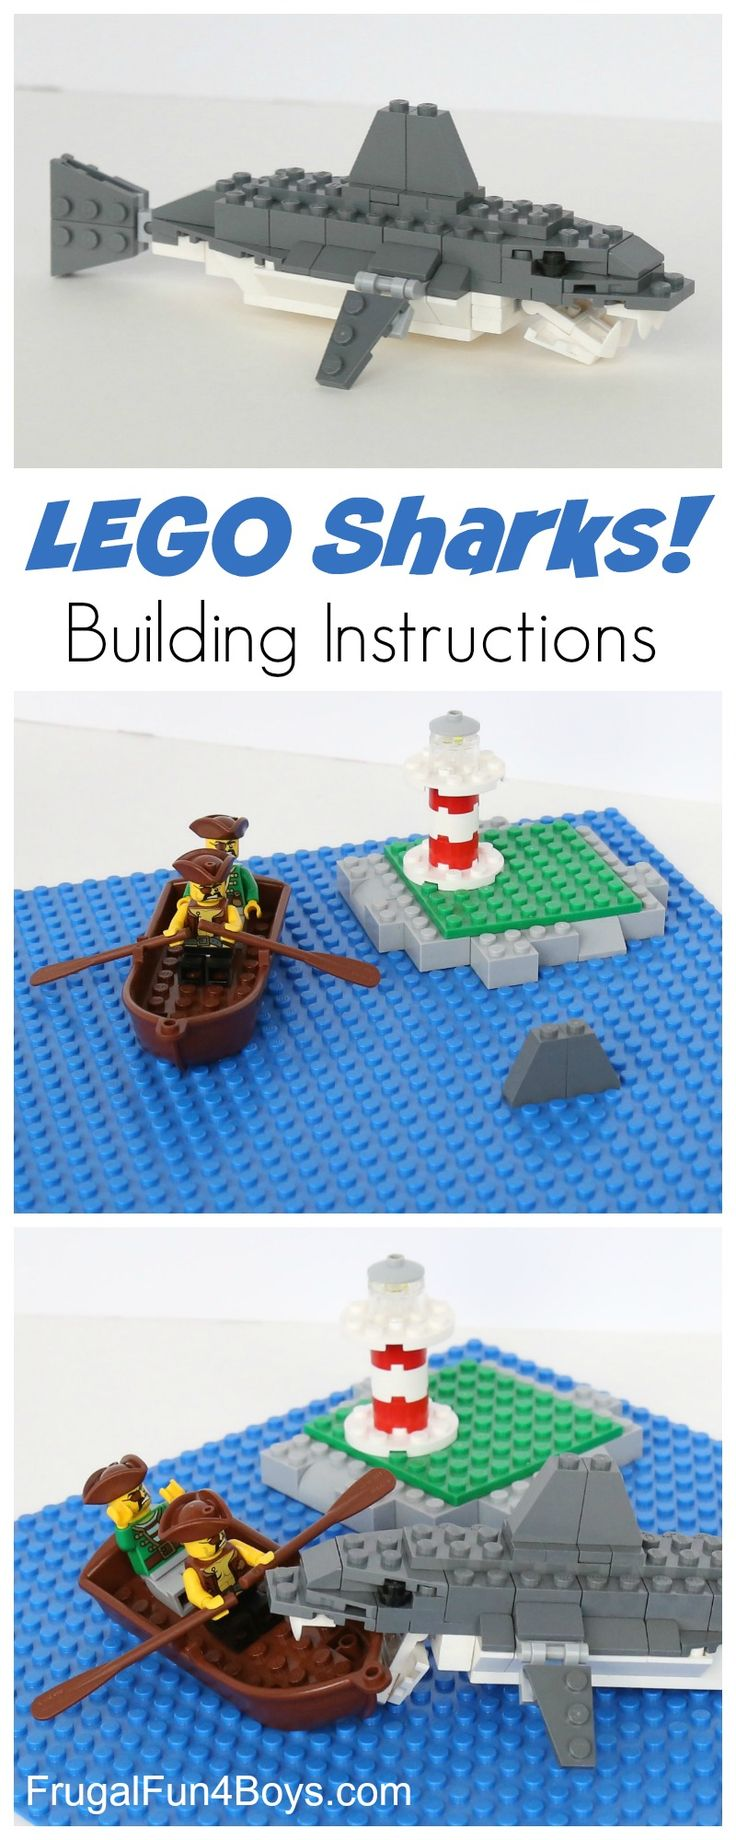 Lego Shark Toys For Boys : Images about frugal fun for boys on pinterest